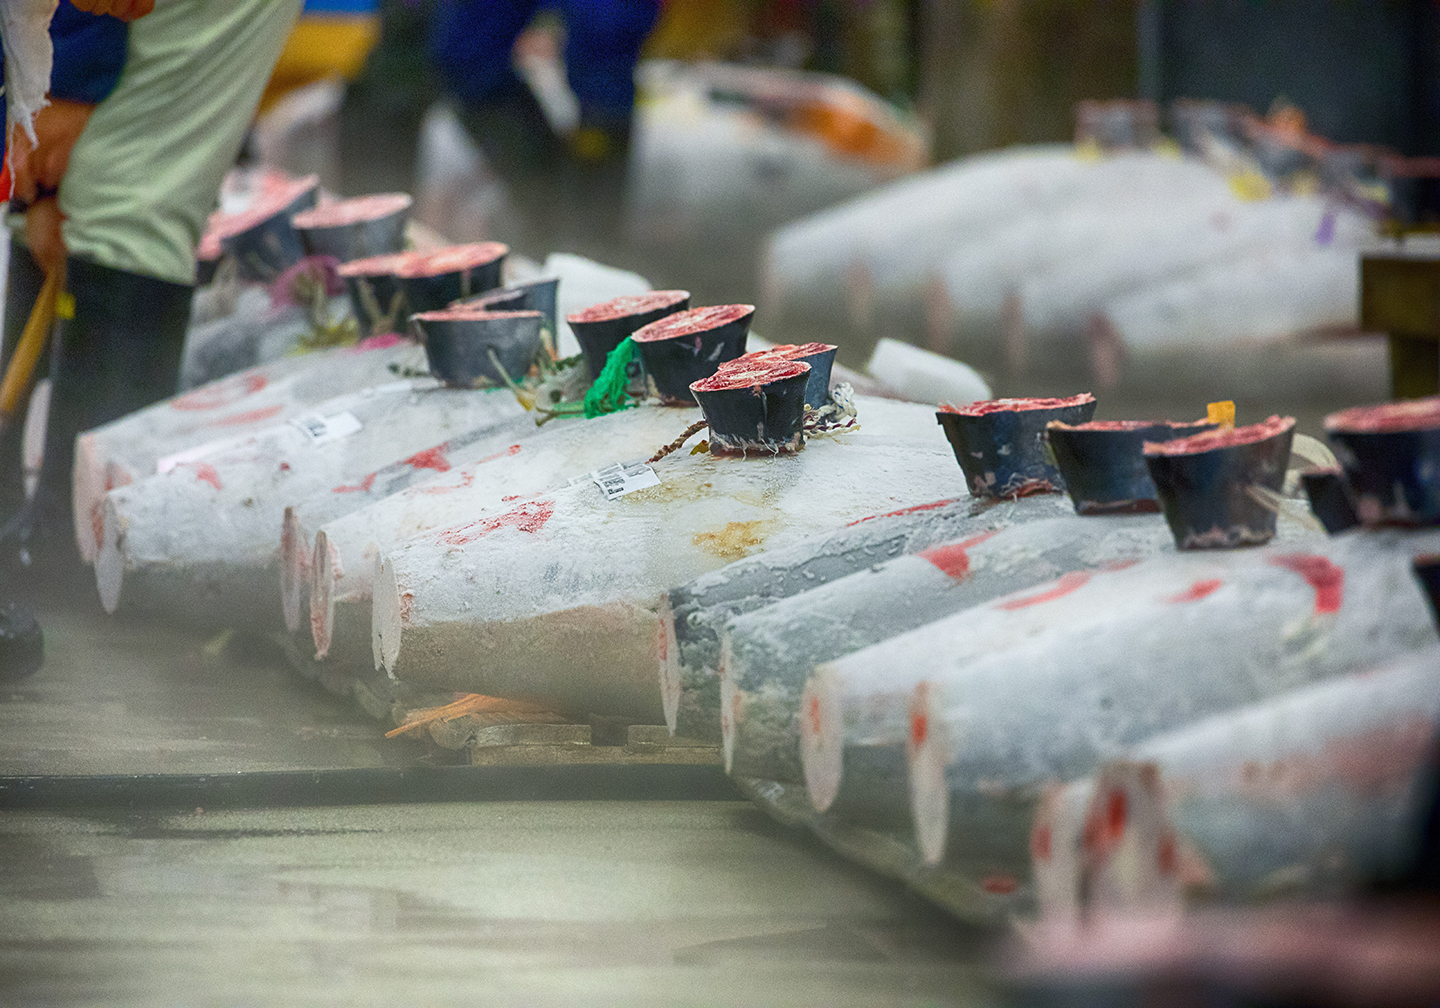 Frozen Tuna with their tails cut off fish lined up at an industrial fish market